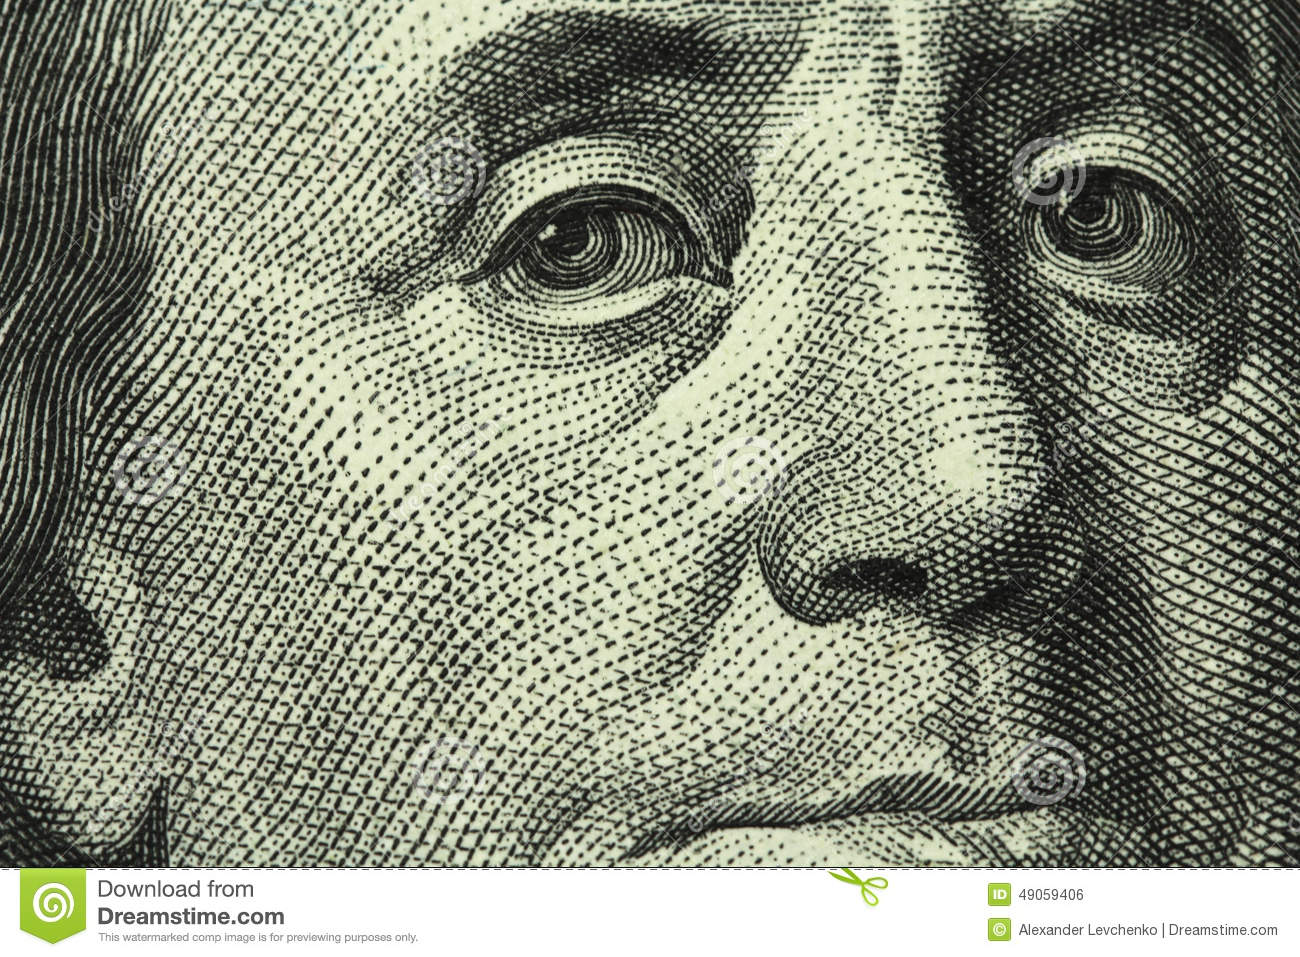 Download Banknote Hundred US Dollars Stock Photo - Image of background, banknote: 49059406